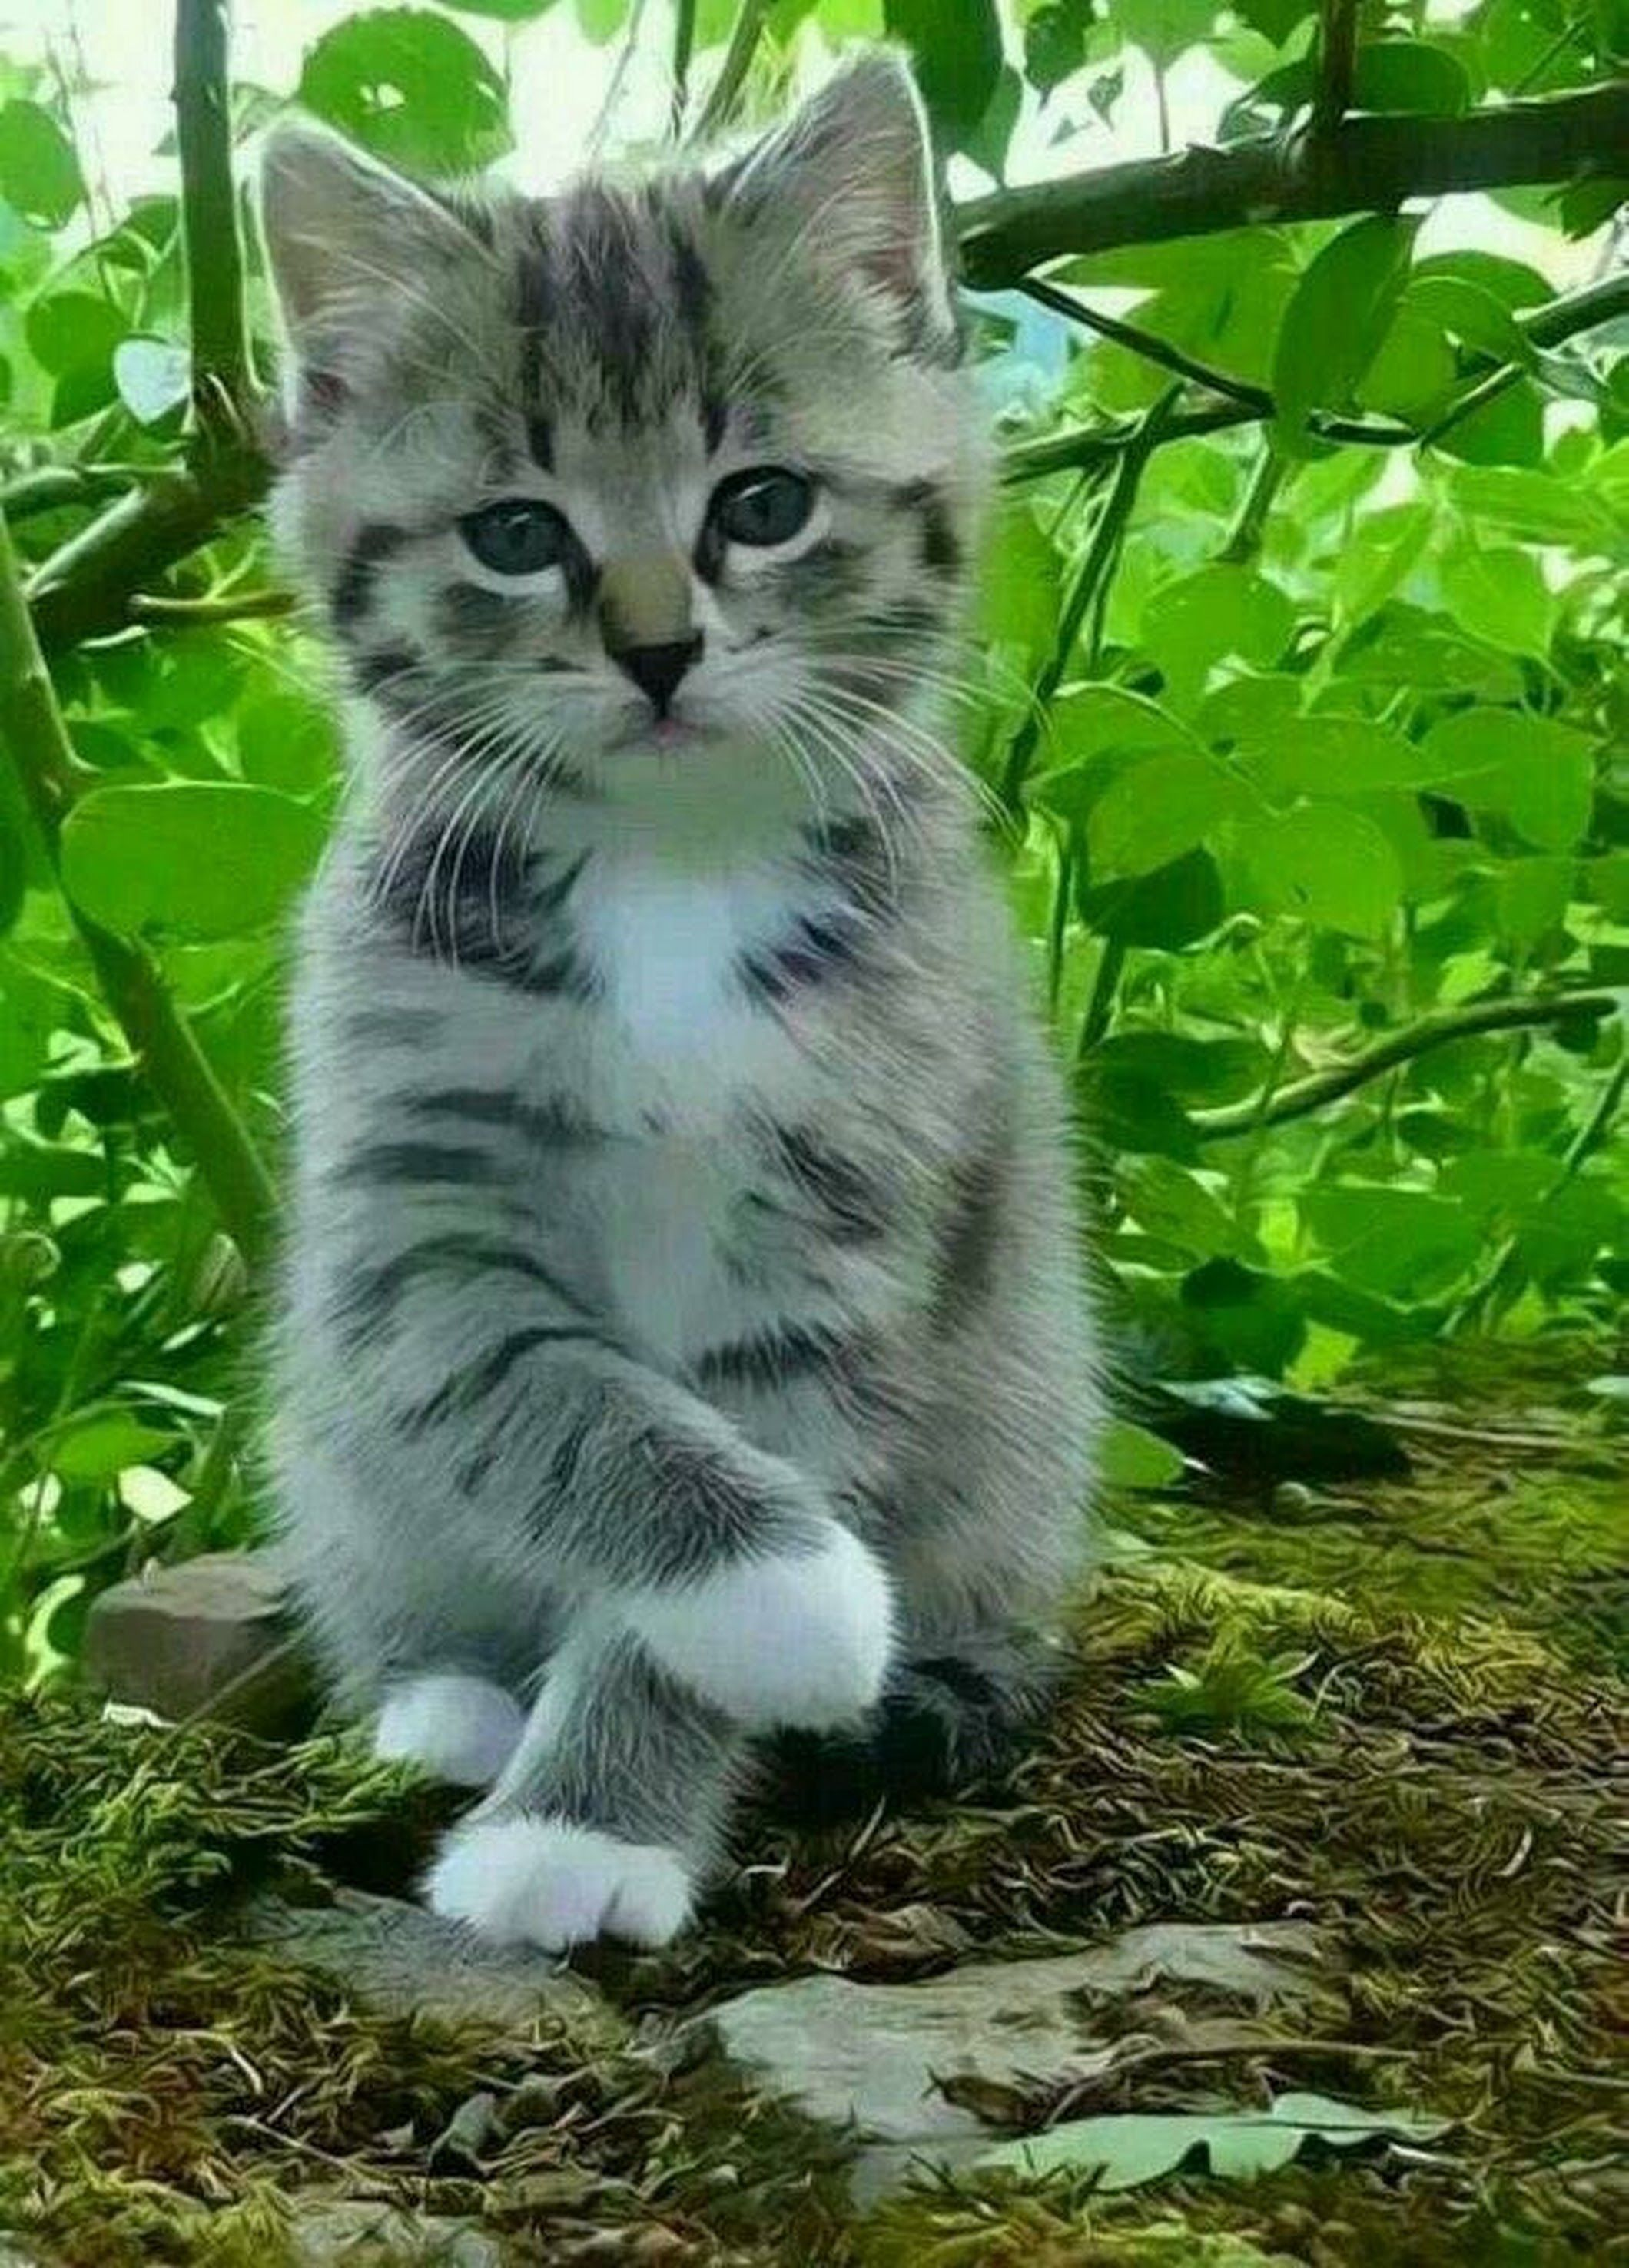 Pin by reem oweis on Cats Cute cats photos, Cute animals